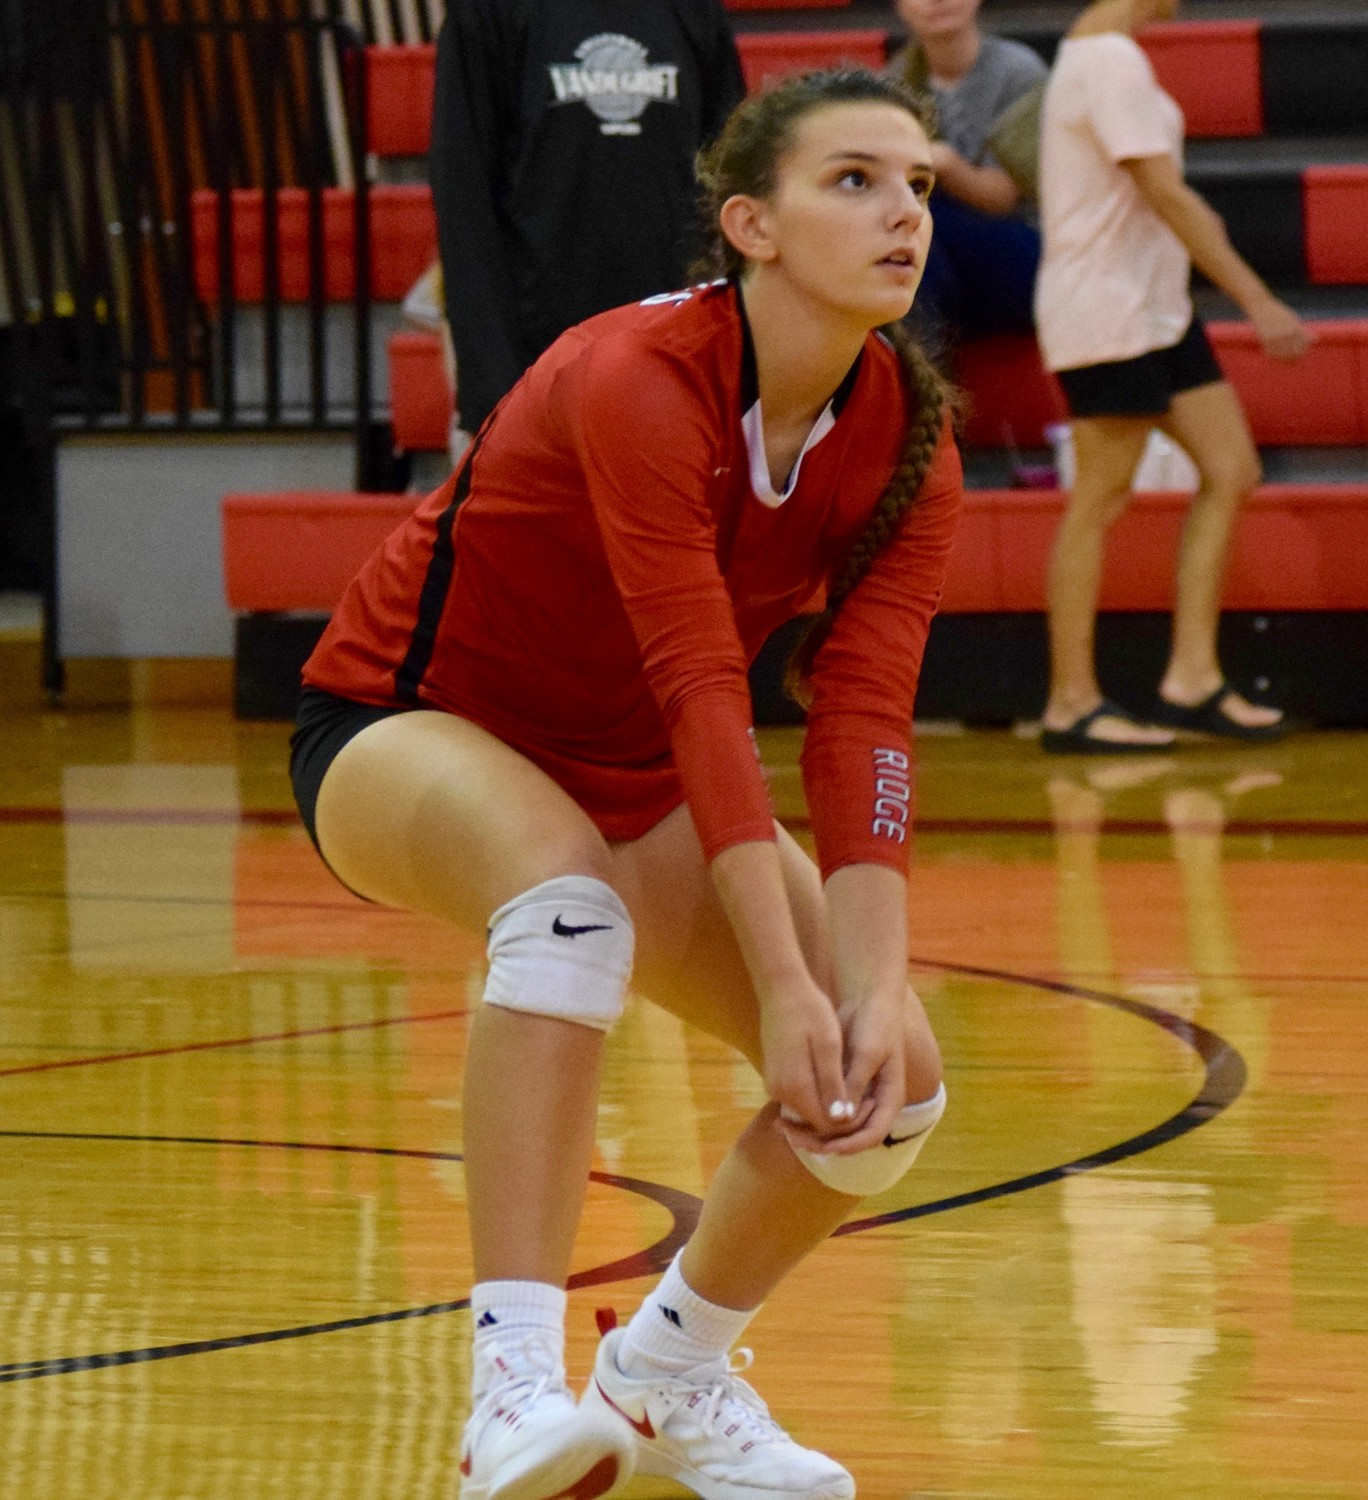 Geneva Nedrow and Vista Ridge swept Vandegrift 3-0 (25-15, 25-22, 25-17) to pick up their second straight district win on Tuesday night.